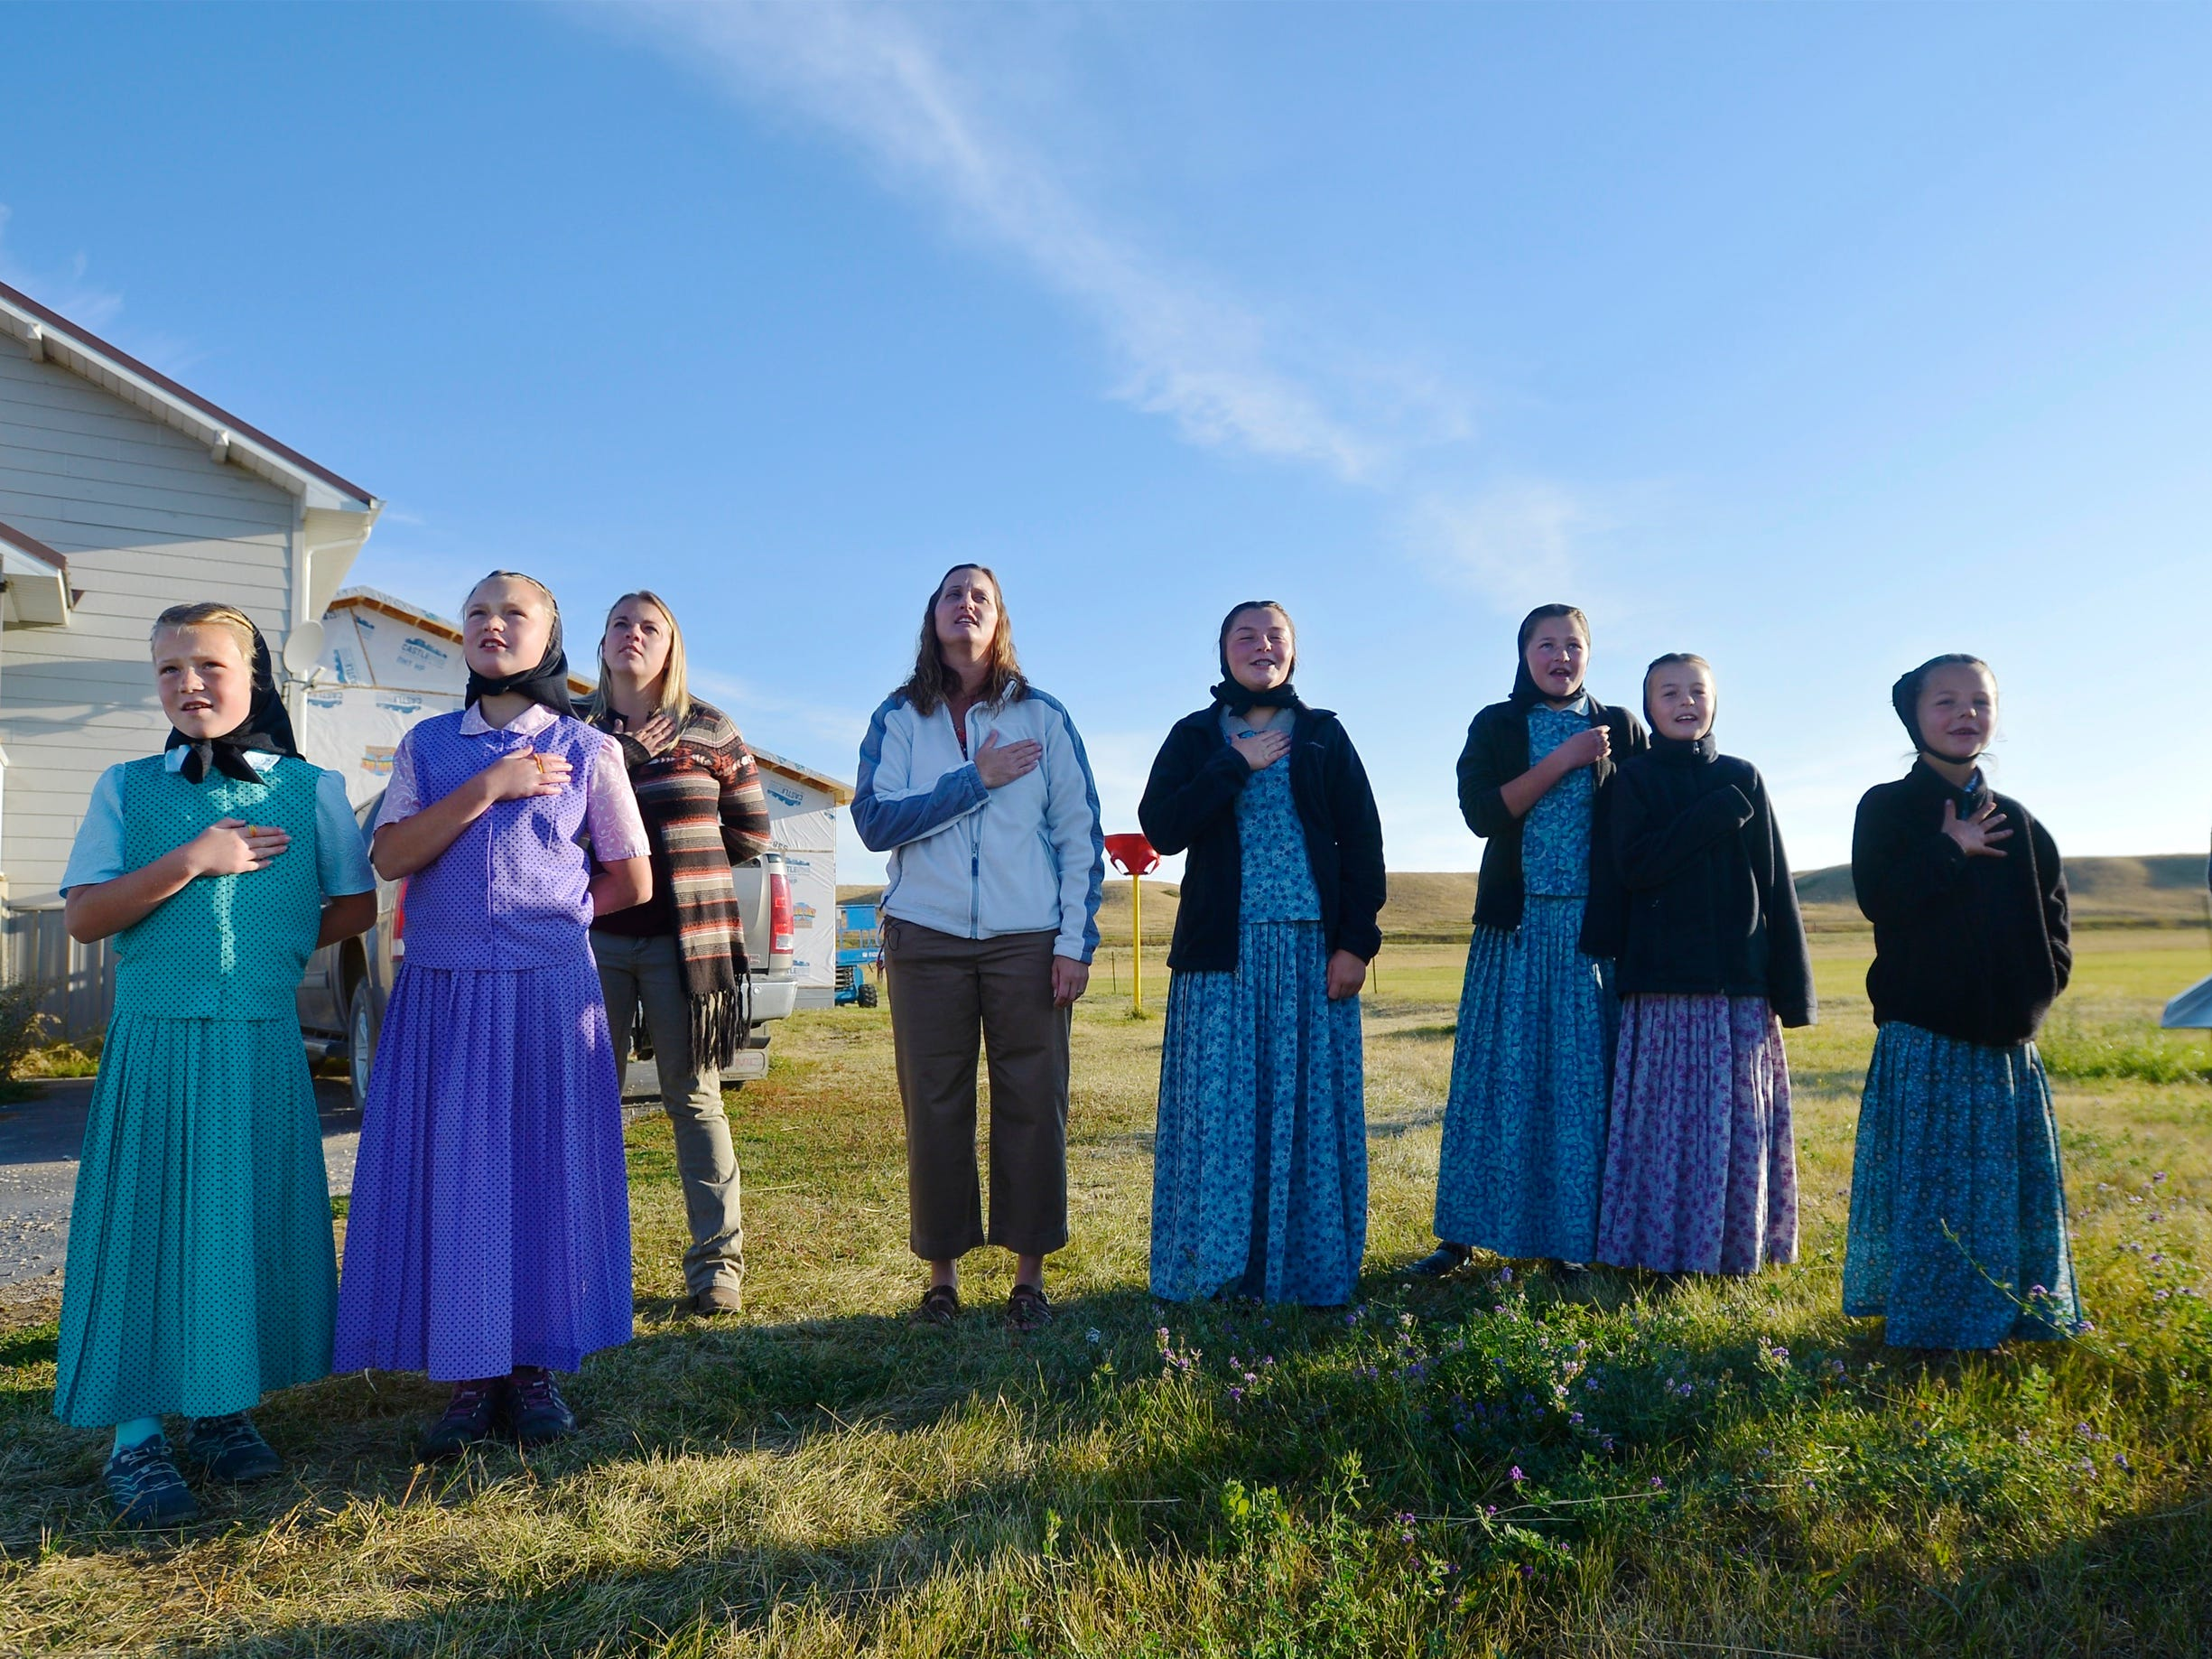 Deerfield, MT – Traci Manseau, fourth from left, recites the Pledge of Allegiance with her students at the start of the day. Manseau is a teaching veteran of 23 years and she has spent her entire career teaching in one room rural school houses. She is currently teaching 15 students across seven different grade levels at the Deerfield Hutterite Colony in North Central Montana's Fergus County.